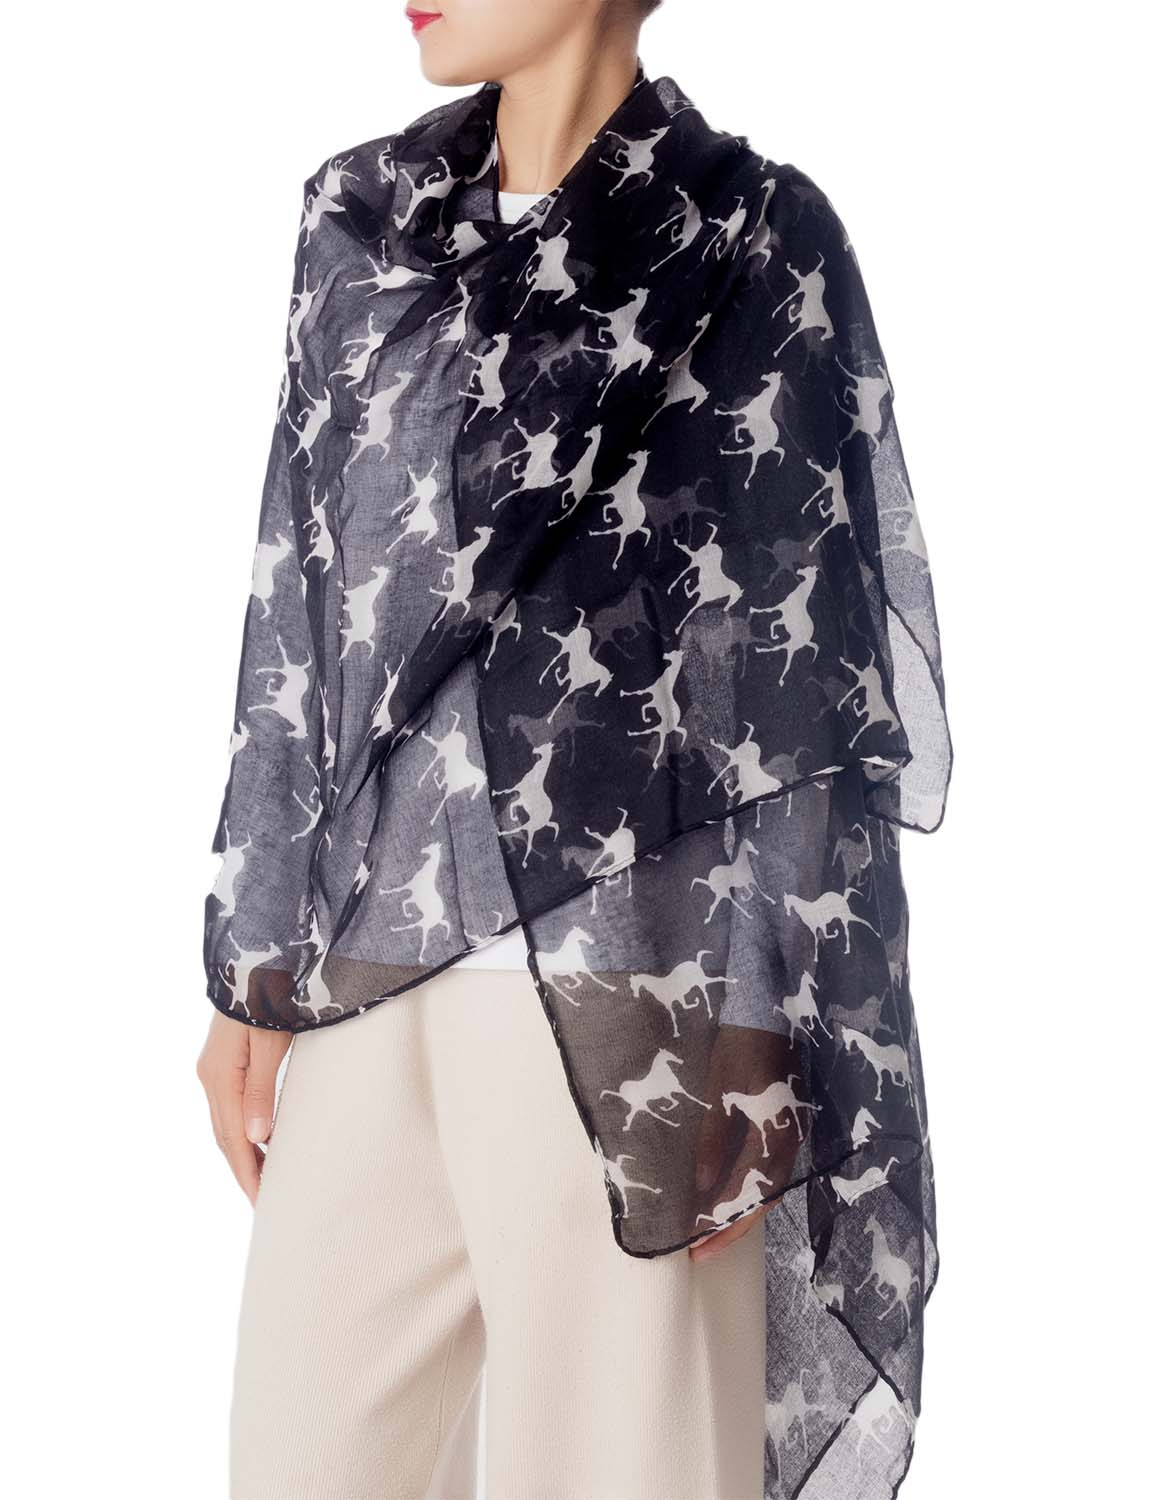 Women's Black Horse Pony Printing Gorgeous Lightweight Long Fashion Scarf, Size: One Size, Black